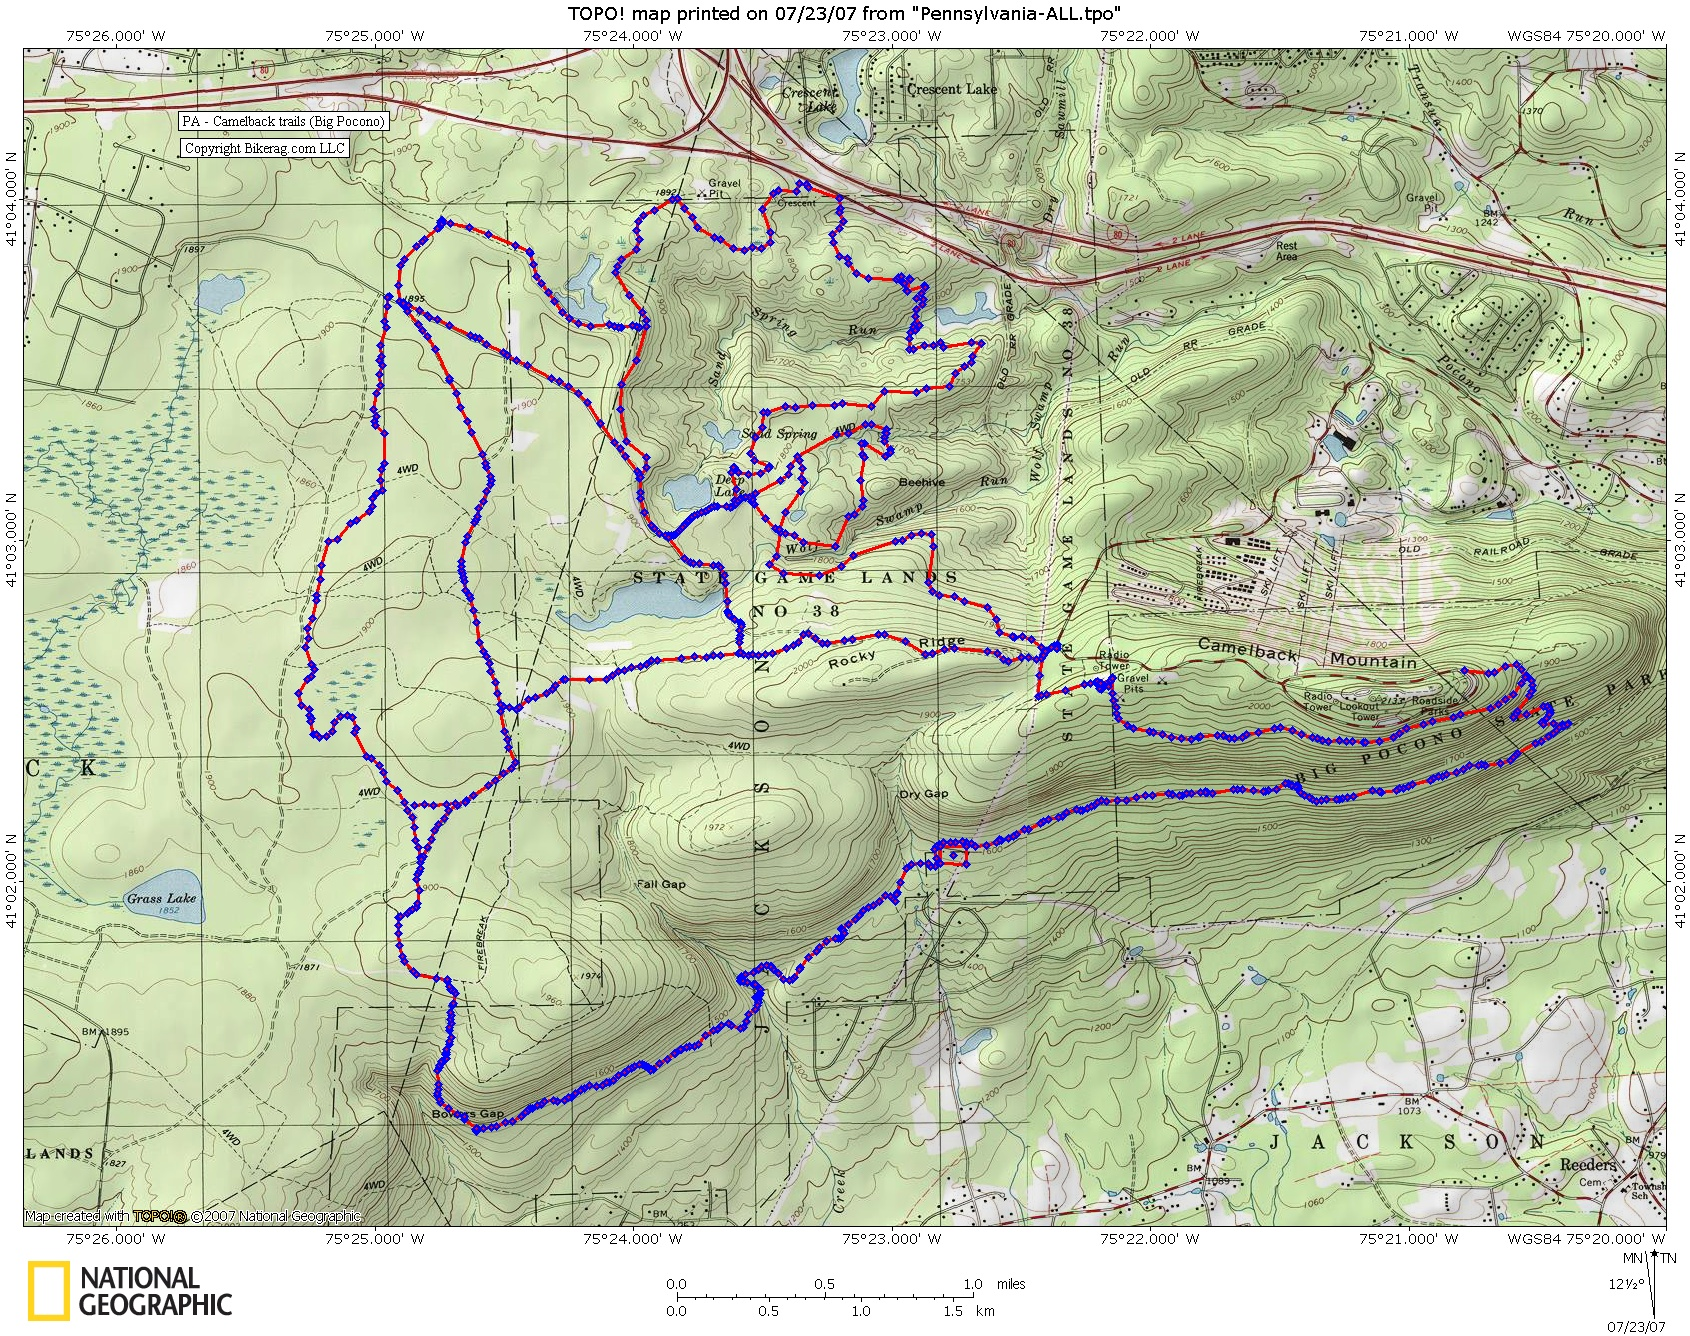 Camelback trails in Big pocono Trail review page on